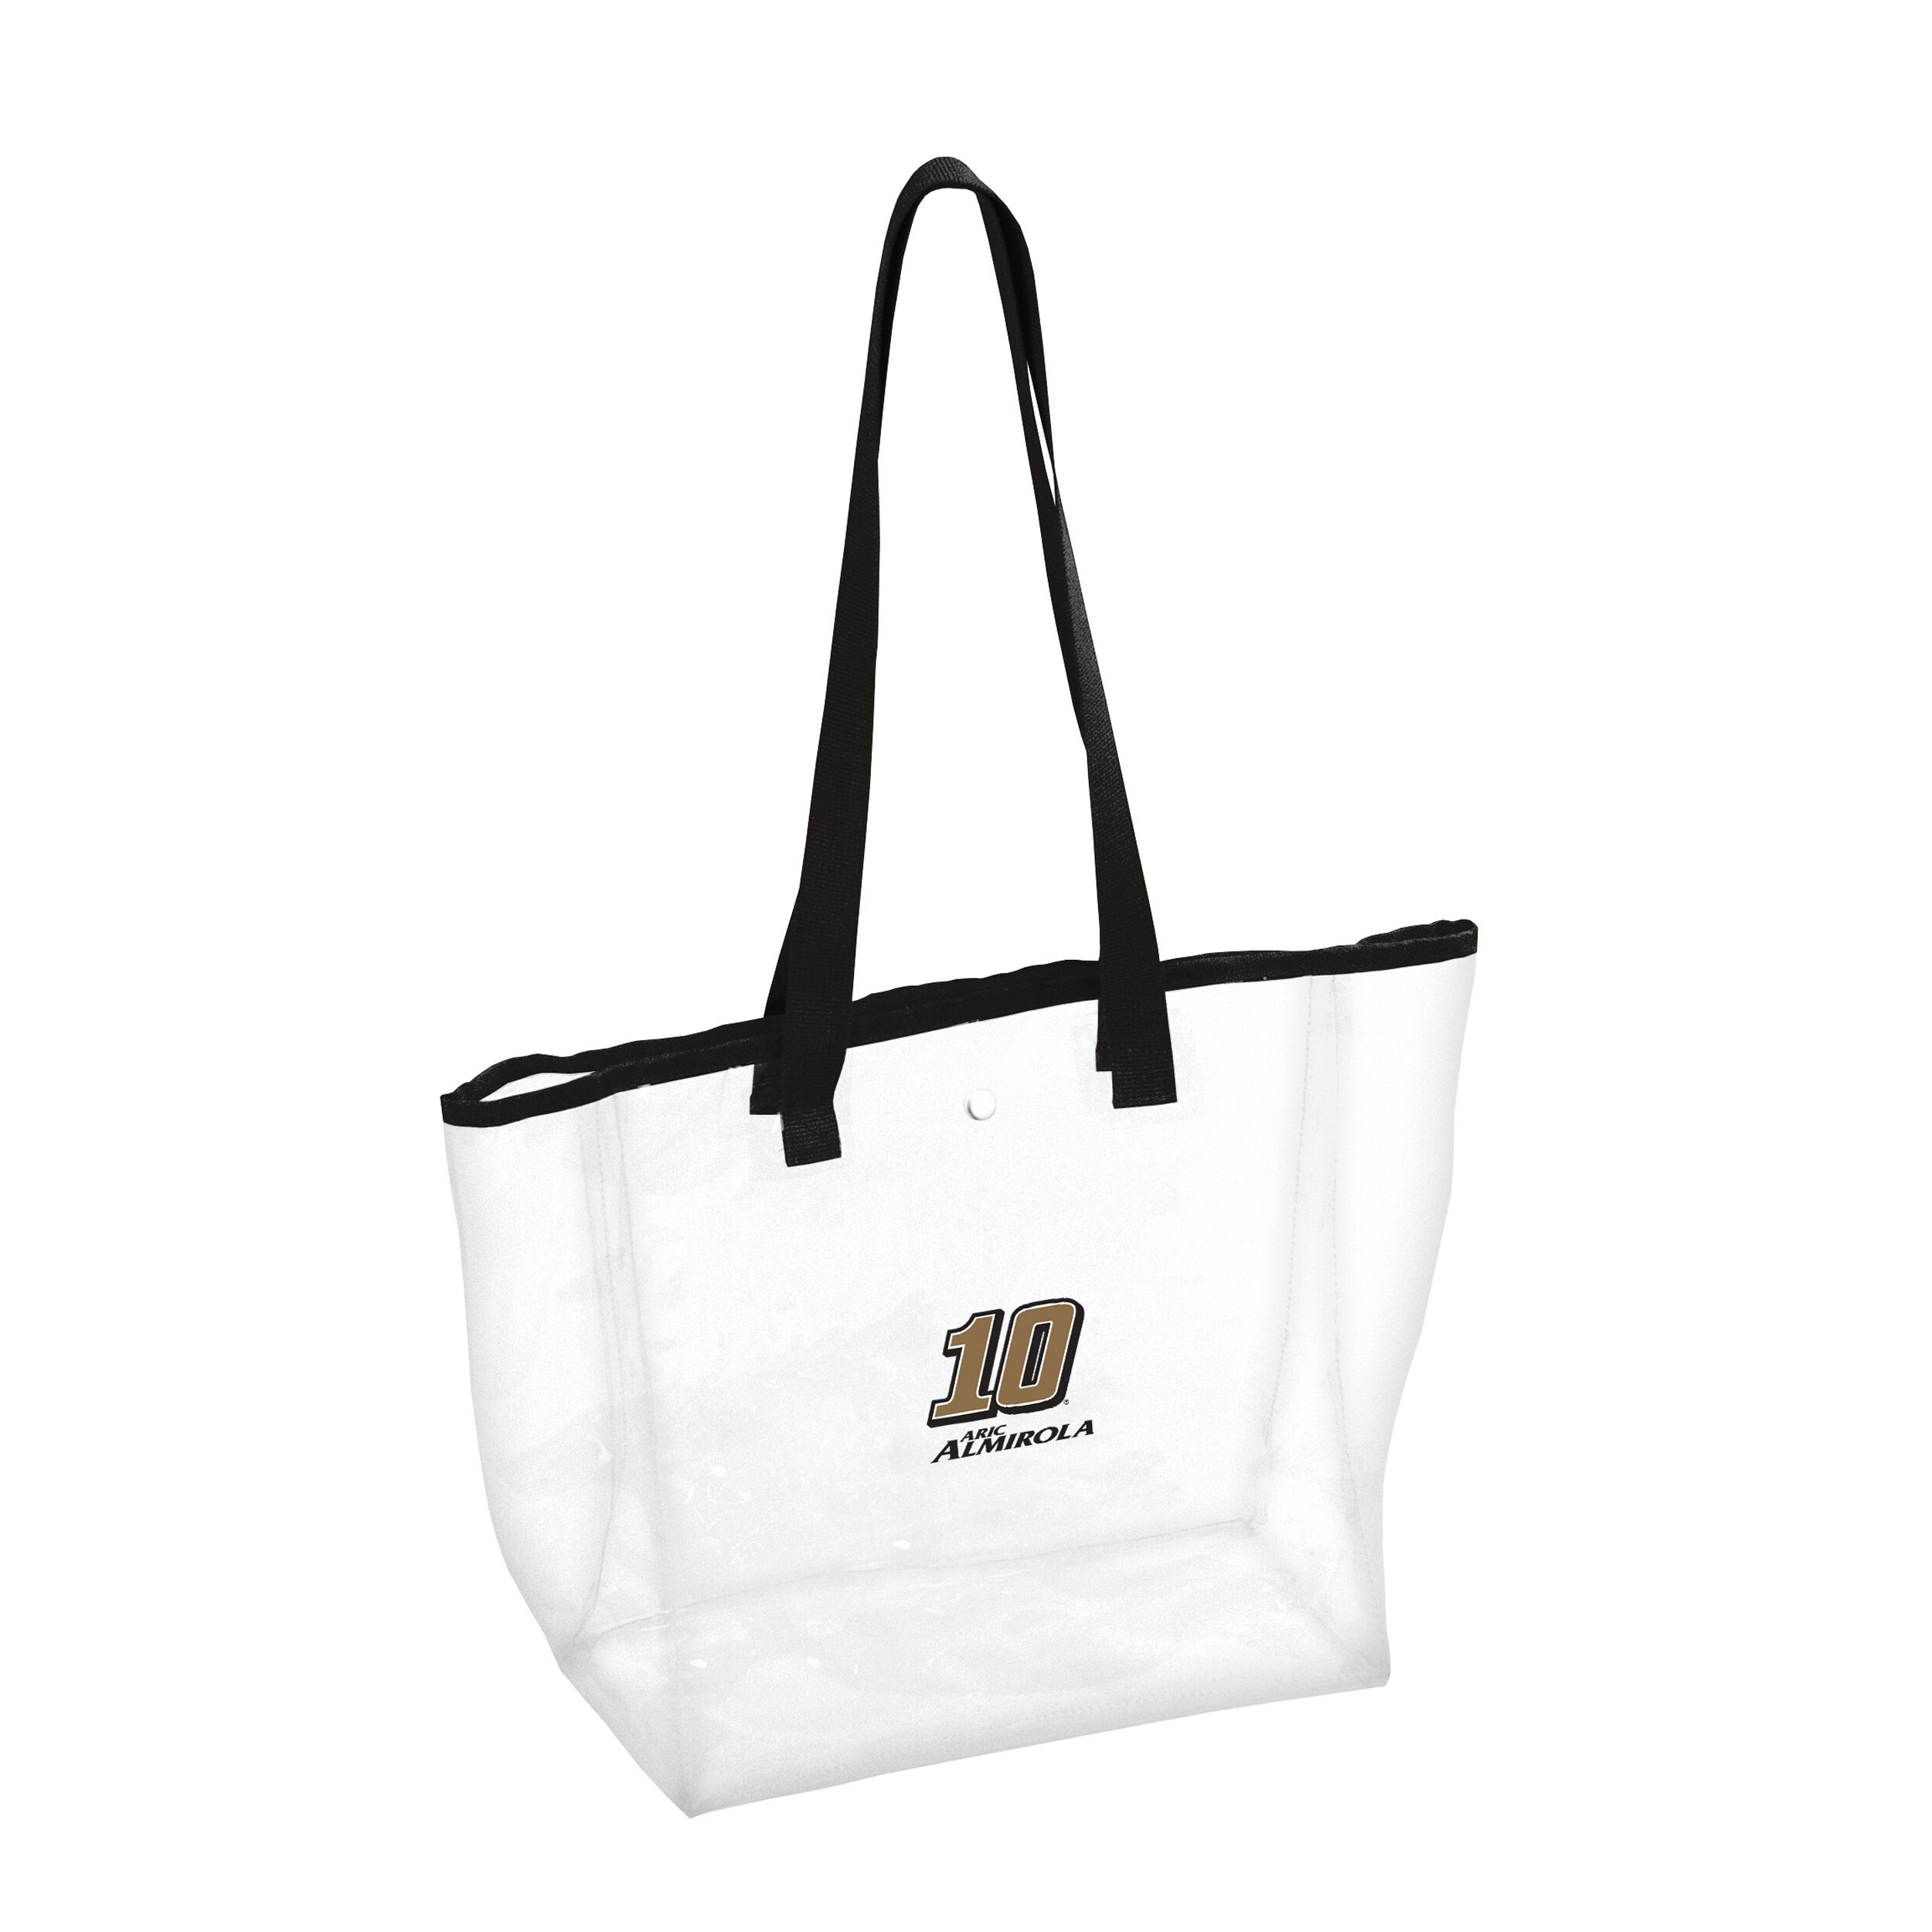 Aric Almirola 2019 Smithfield Stewart-Haas Racing Clear/Black Stadium Bag